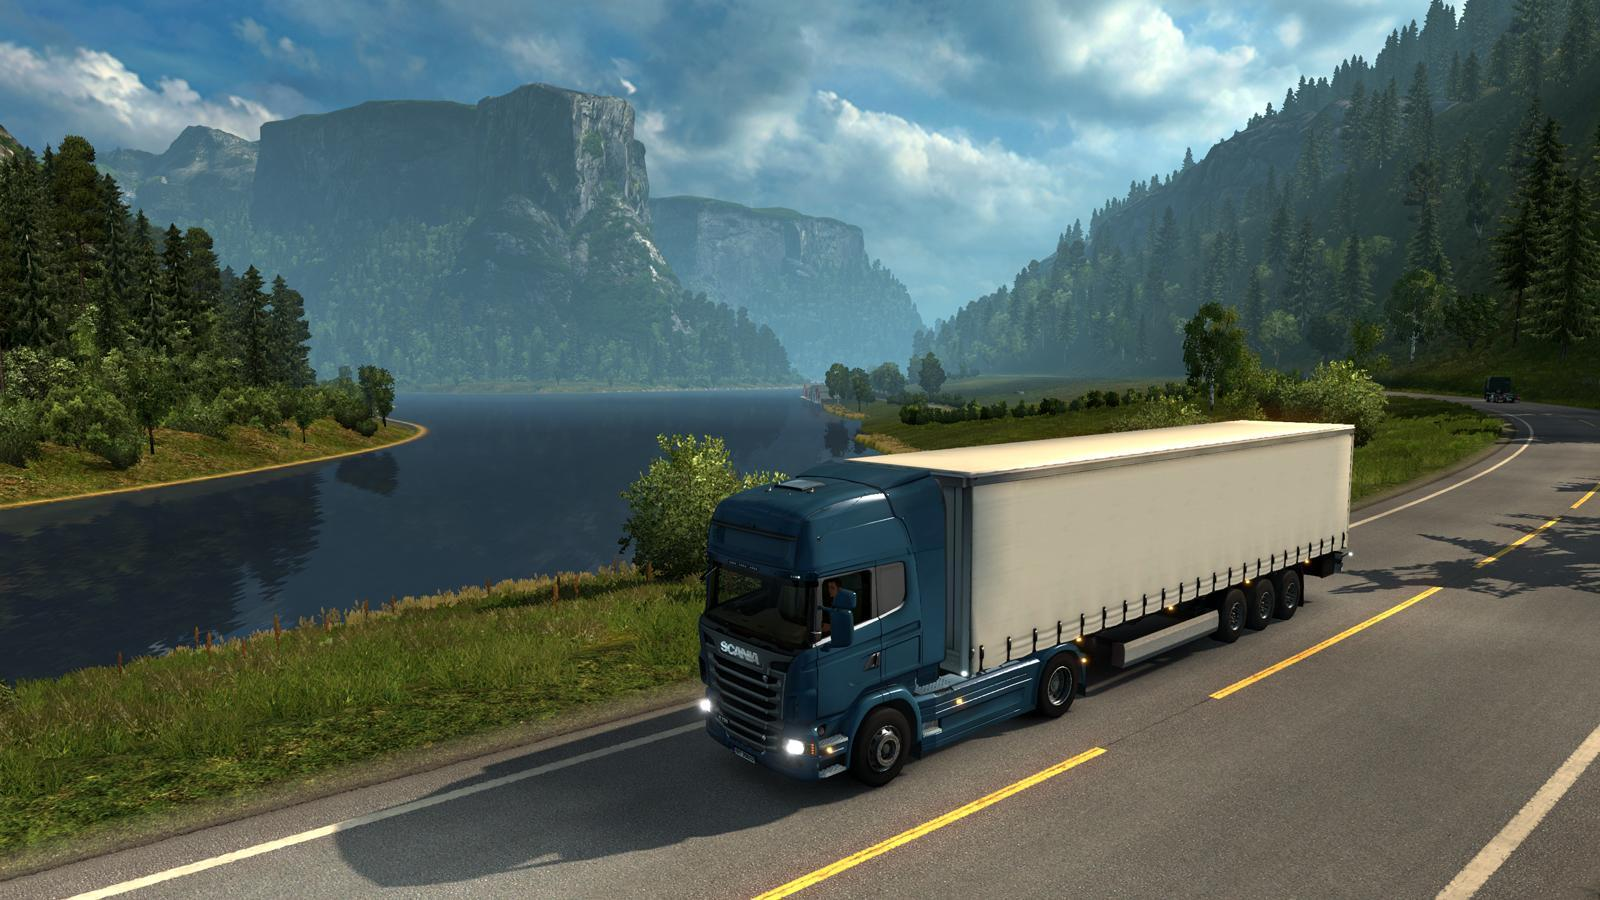 Euro Truck Simulator 2 Mobile Mod Searcher for Android - APK